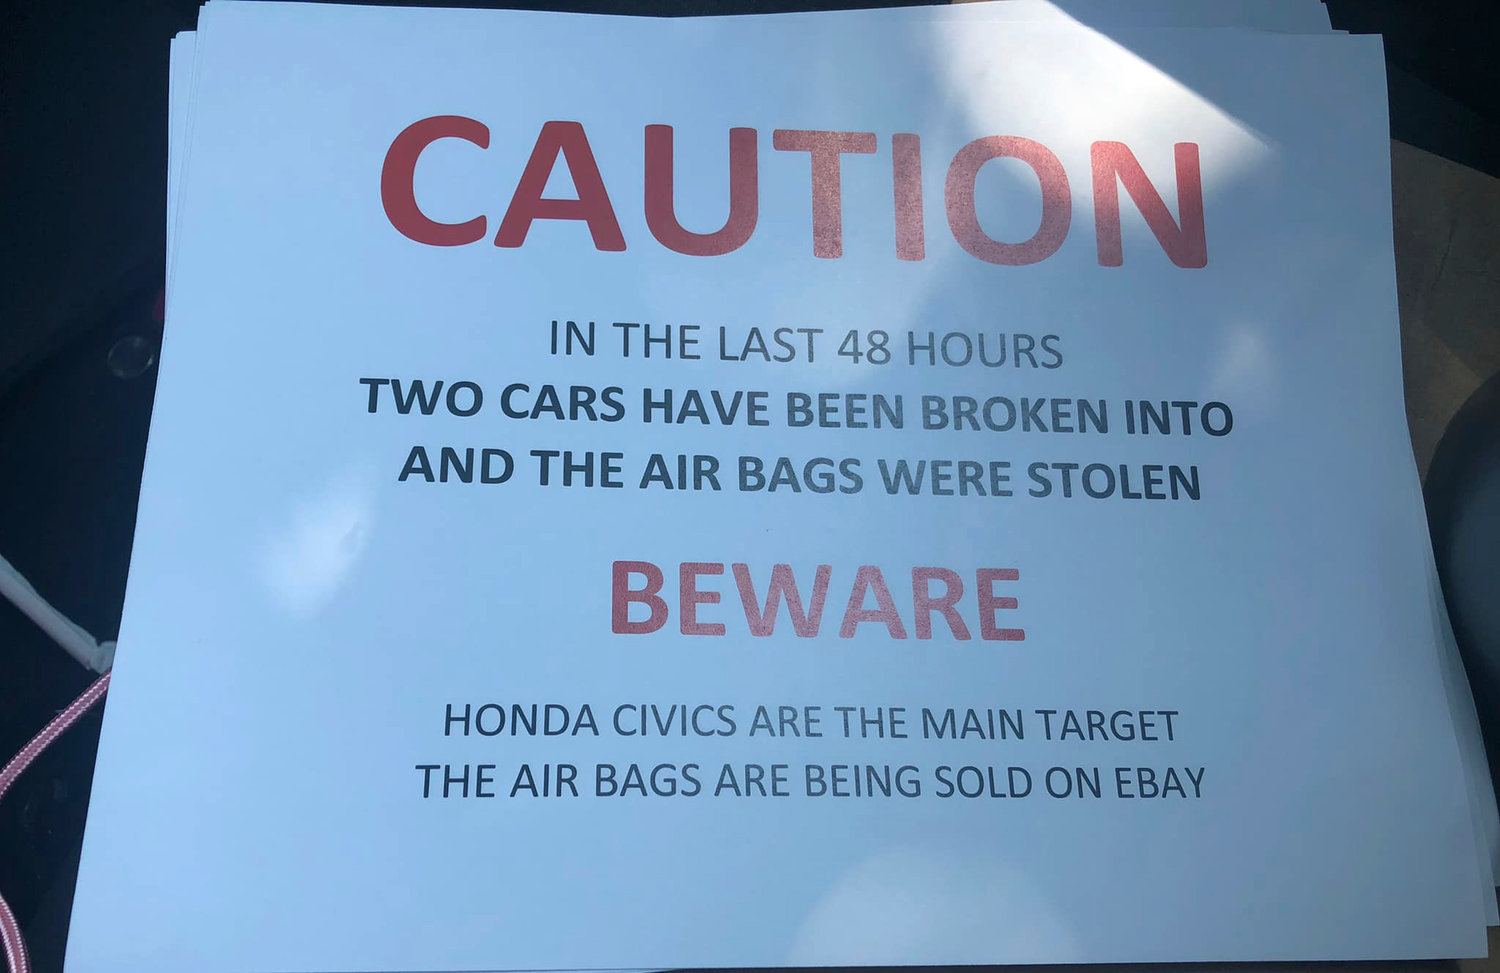 Signs warning residents of stolen airbags reportedly appeared at a municipal parking lot. Police confirmed that three airbags had been stolen out of Honda vehicles in Valley Stream this past week.